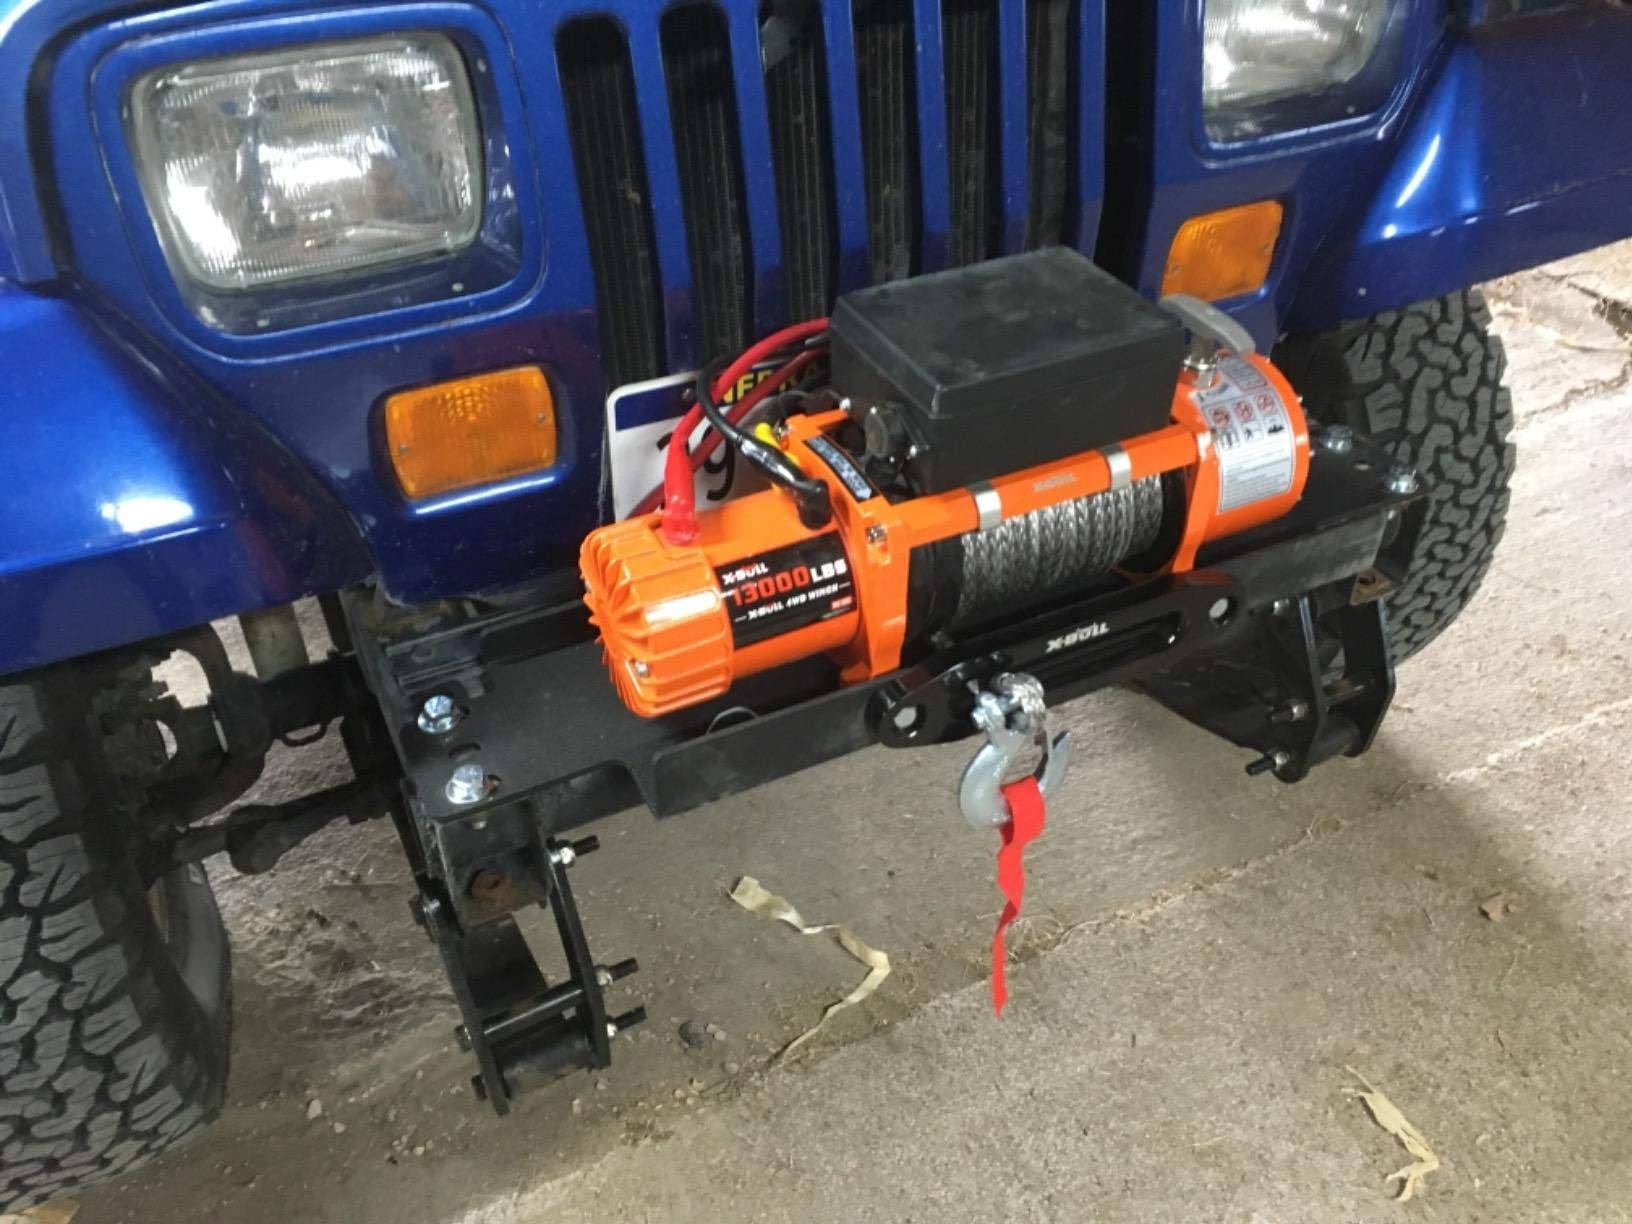 X-BULL 12V Waterproof Synthetic Rope Winch-13000 lb. Load Capacity IP67 by X-BULL (Image #6)